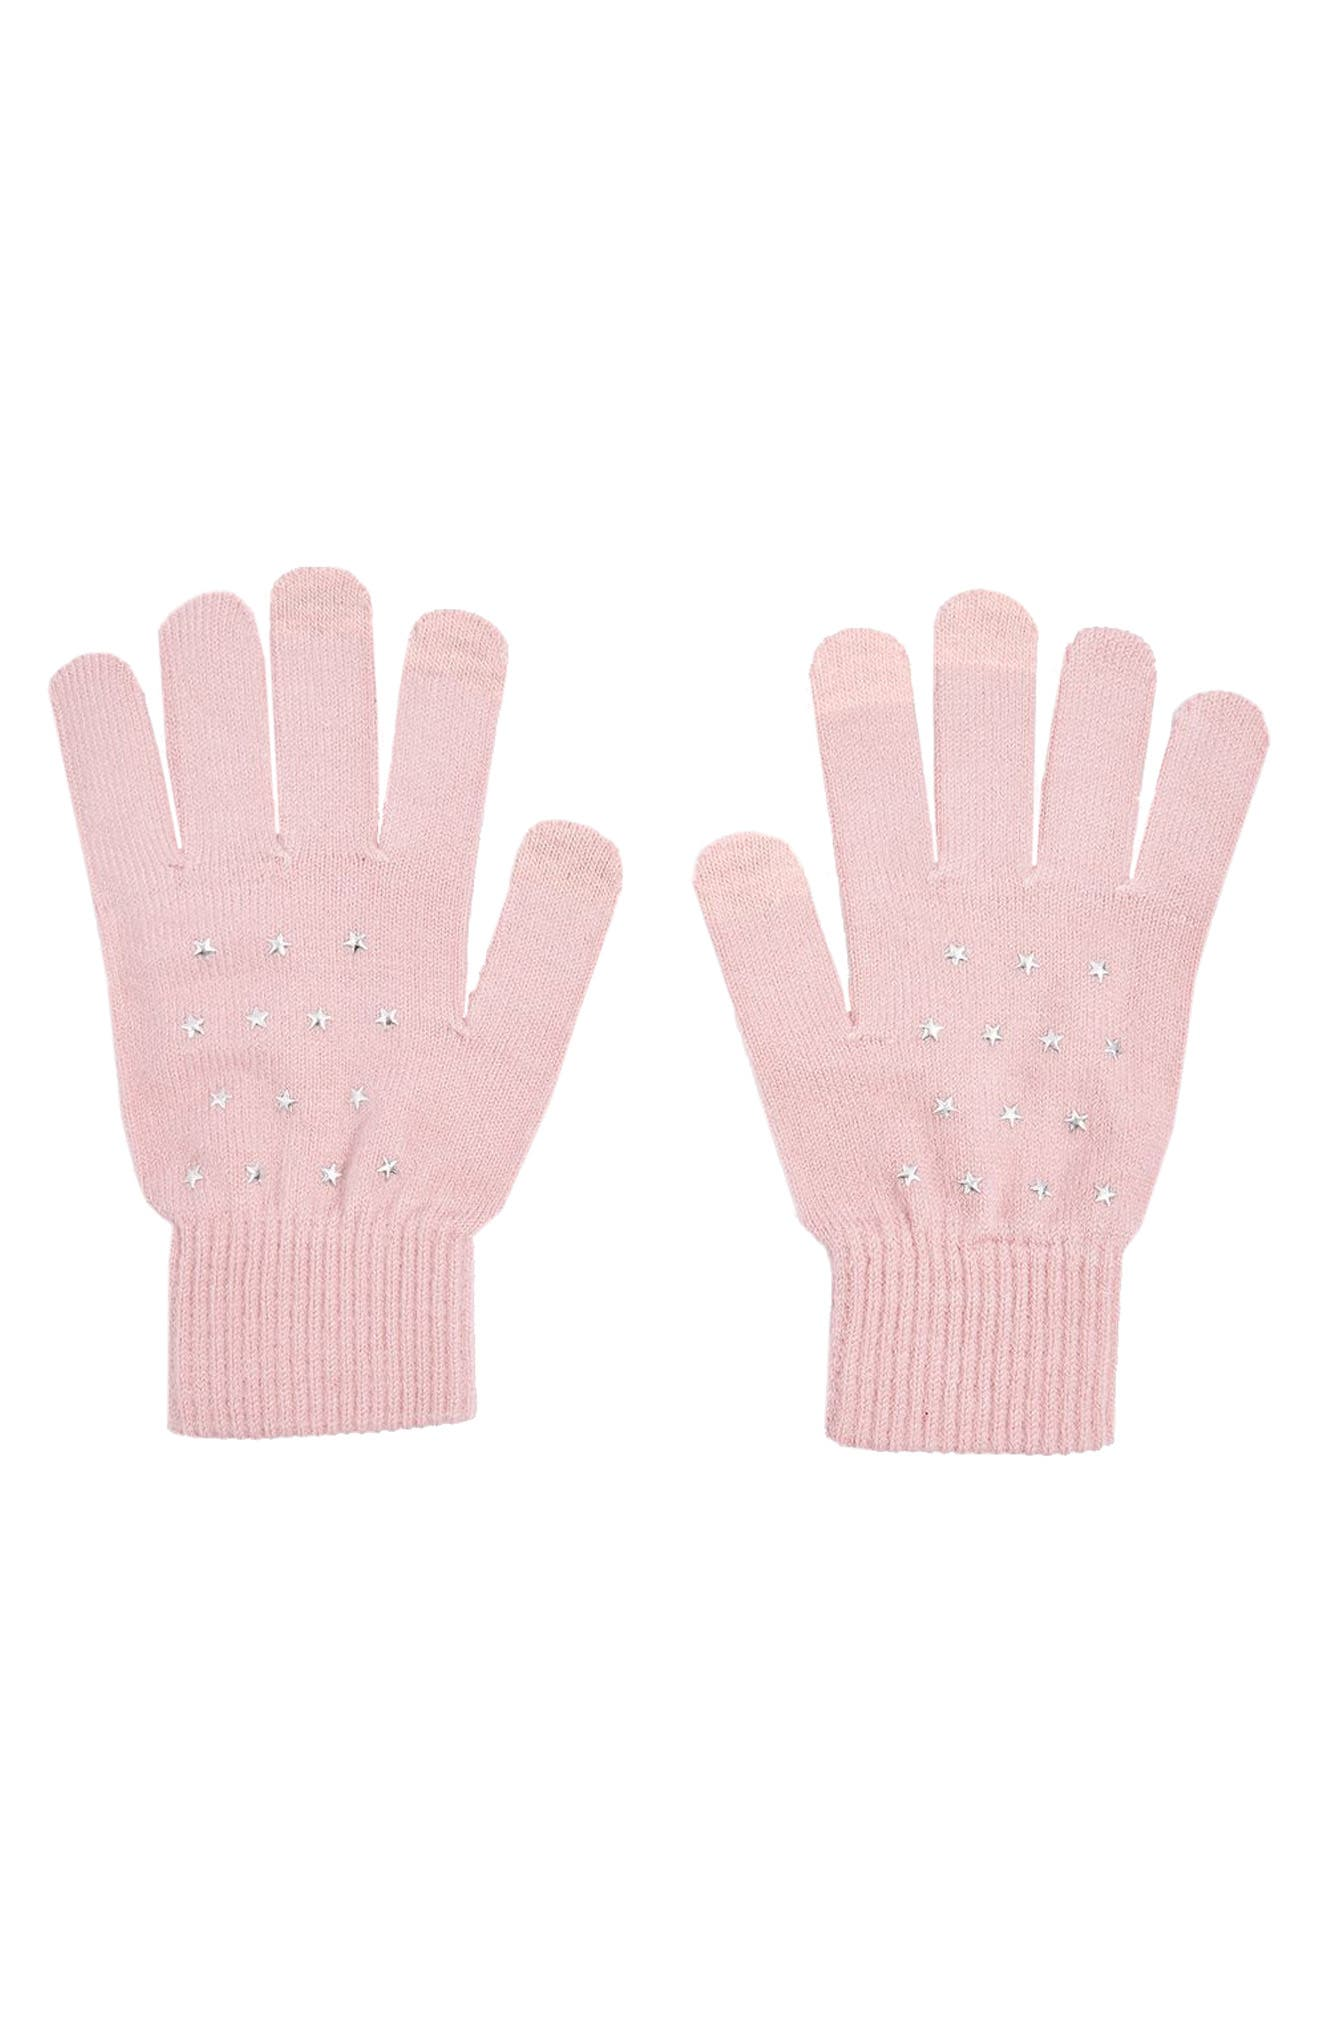 Star Knit Gloves,                             Main thumbnail 1, color,                             250